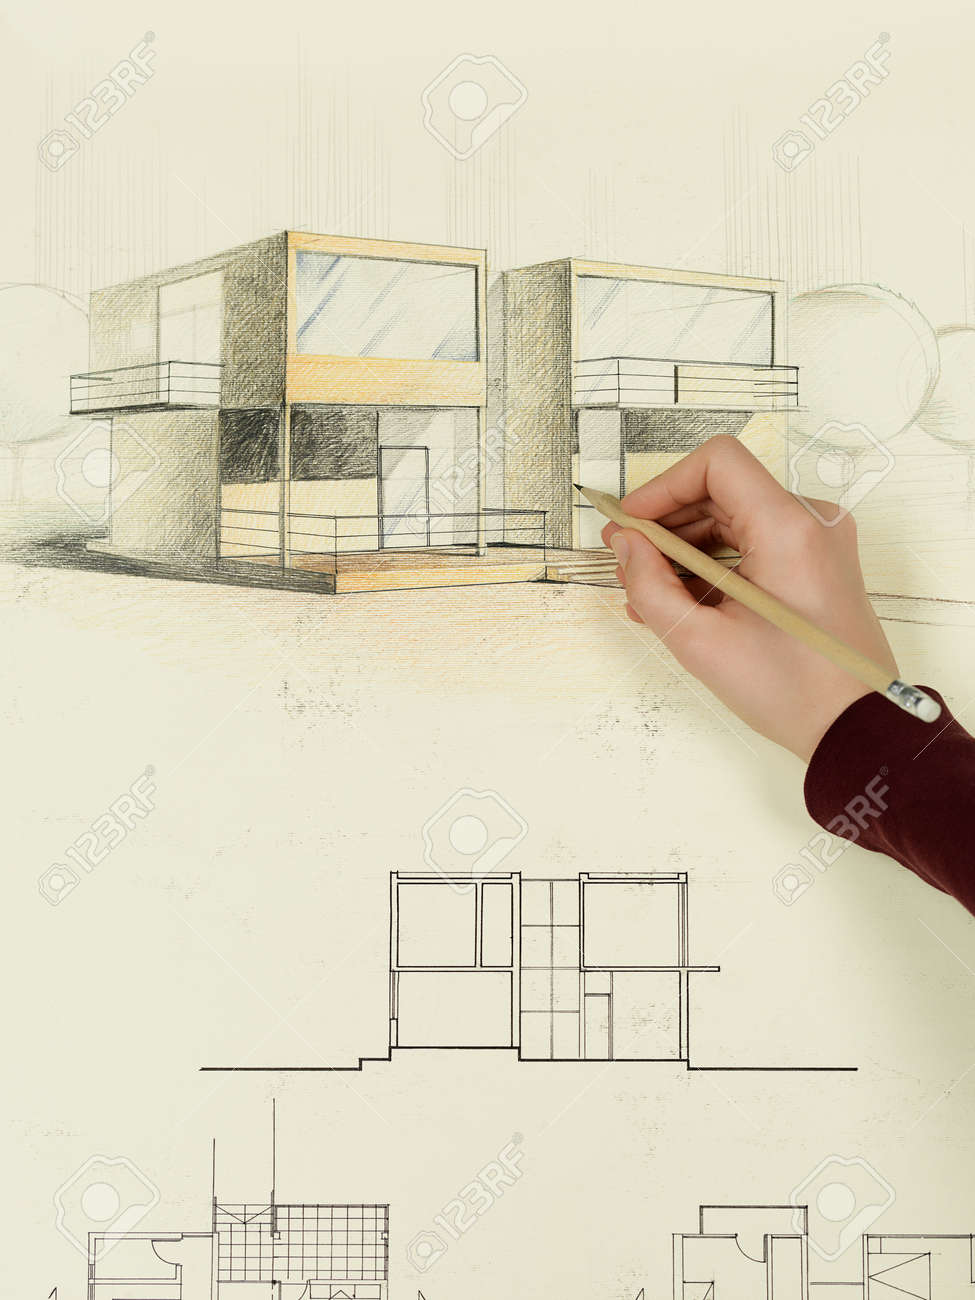 Modern Architecture Perspective woman's hand drawing architectural perspective of modern house